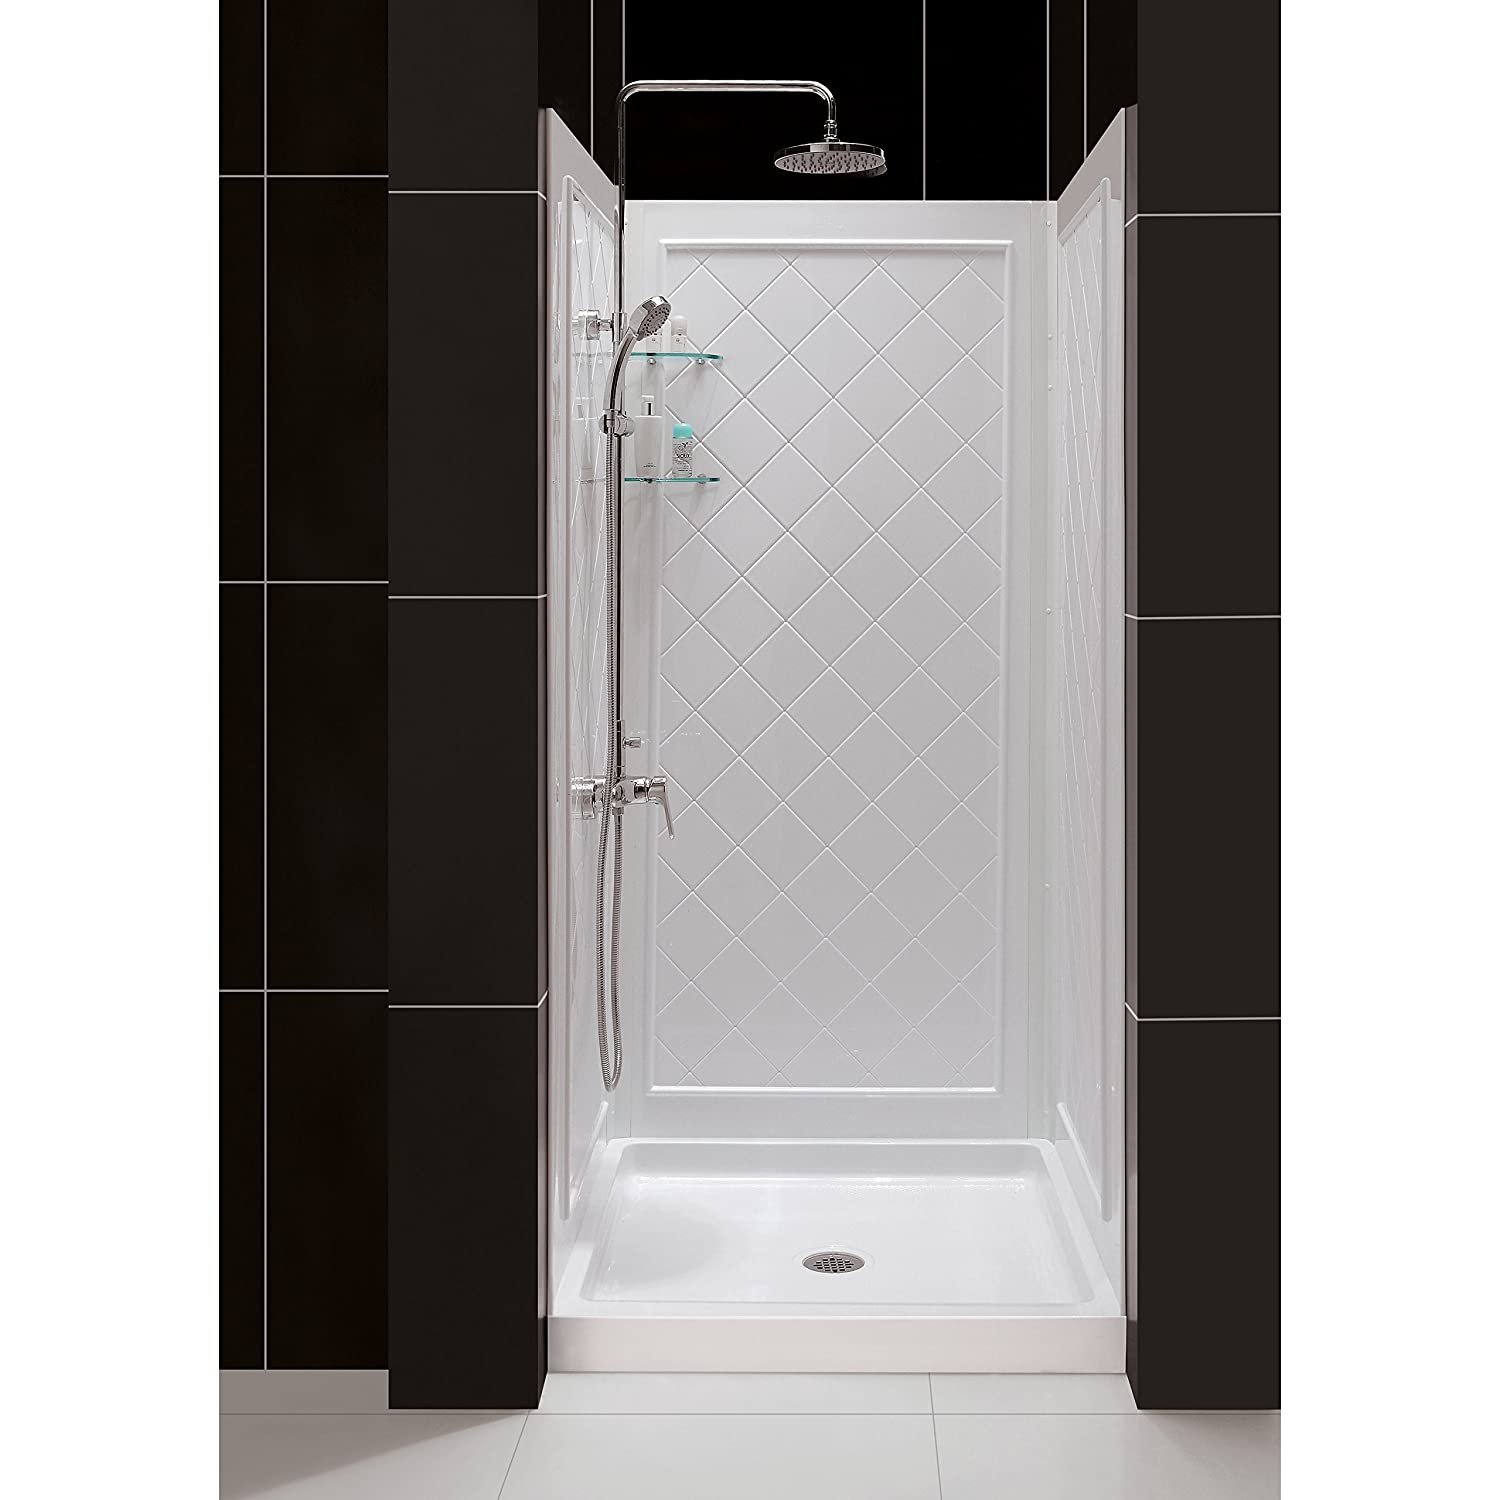 32 corner shower stall. DreamLine SlimLine 36  By Shower Base And QWALL 5 Backwall Kit Bases Pans Amazon Com Kitchen Bath Fixtures Showers